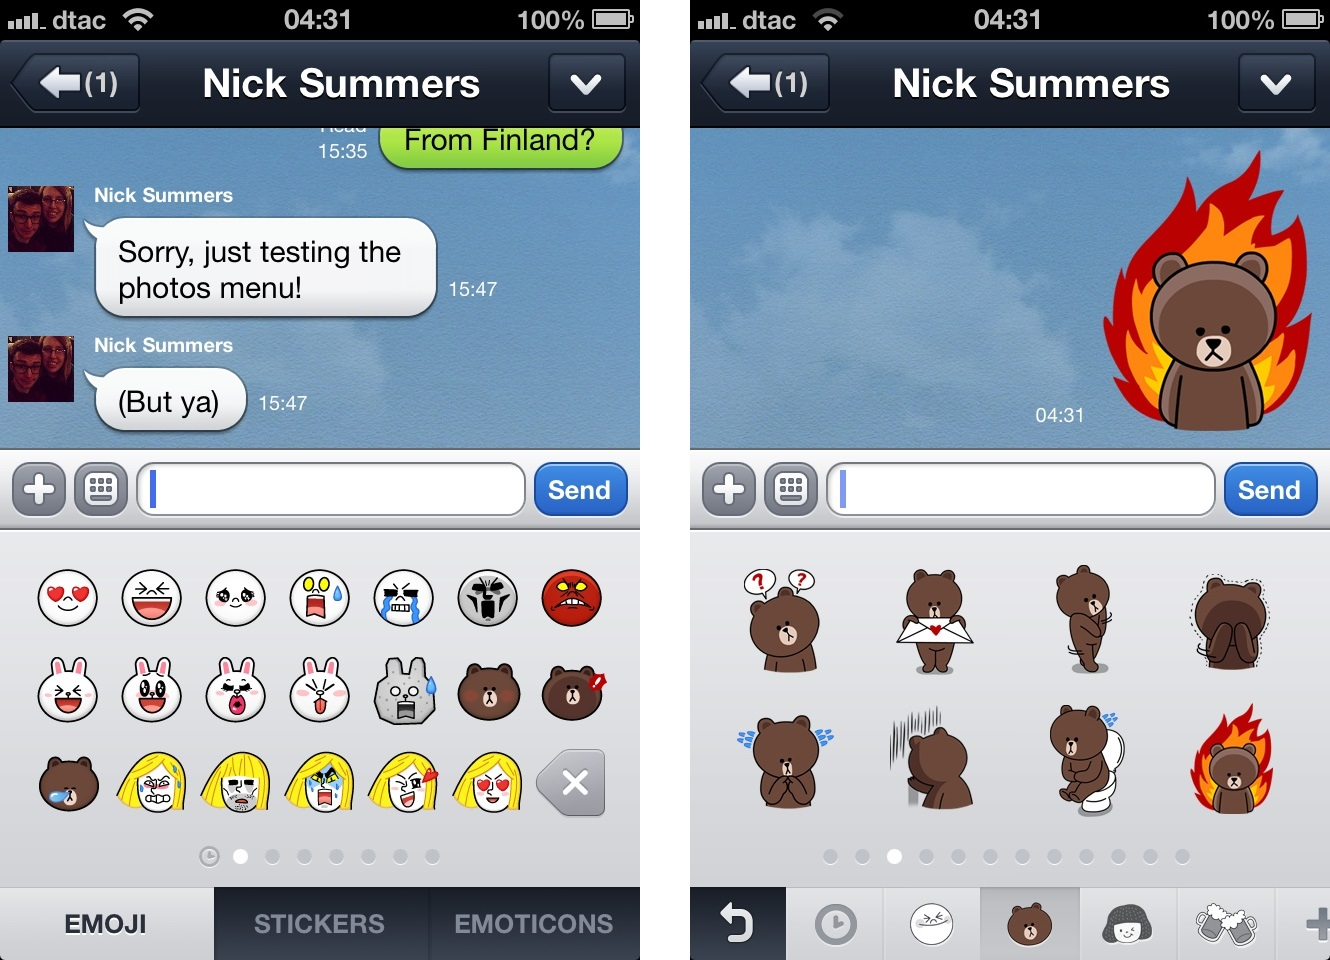 Stickers: From Japanese Craze to Global Messaging Phenomenon